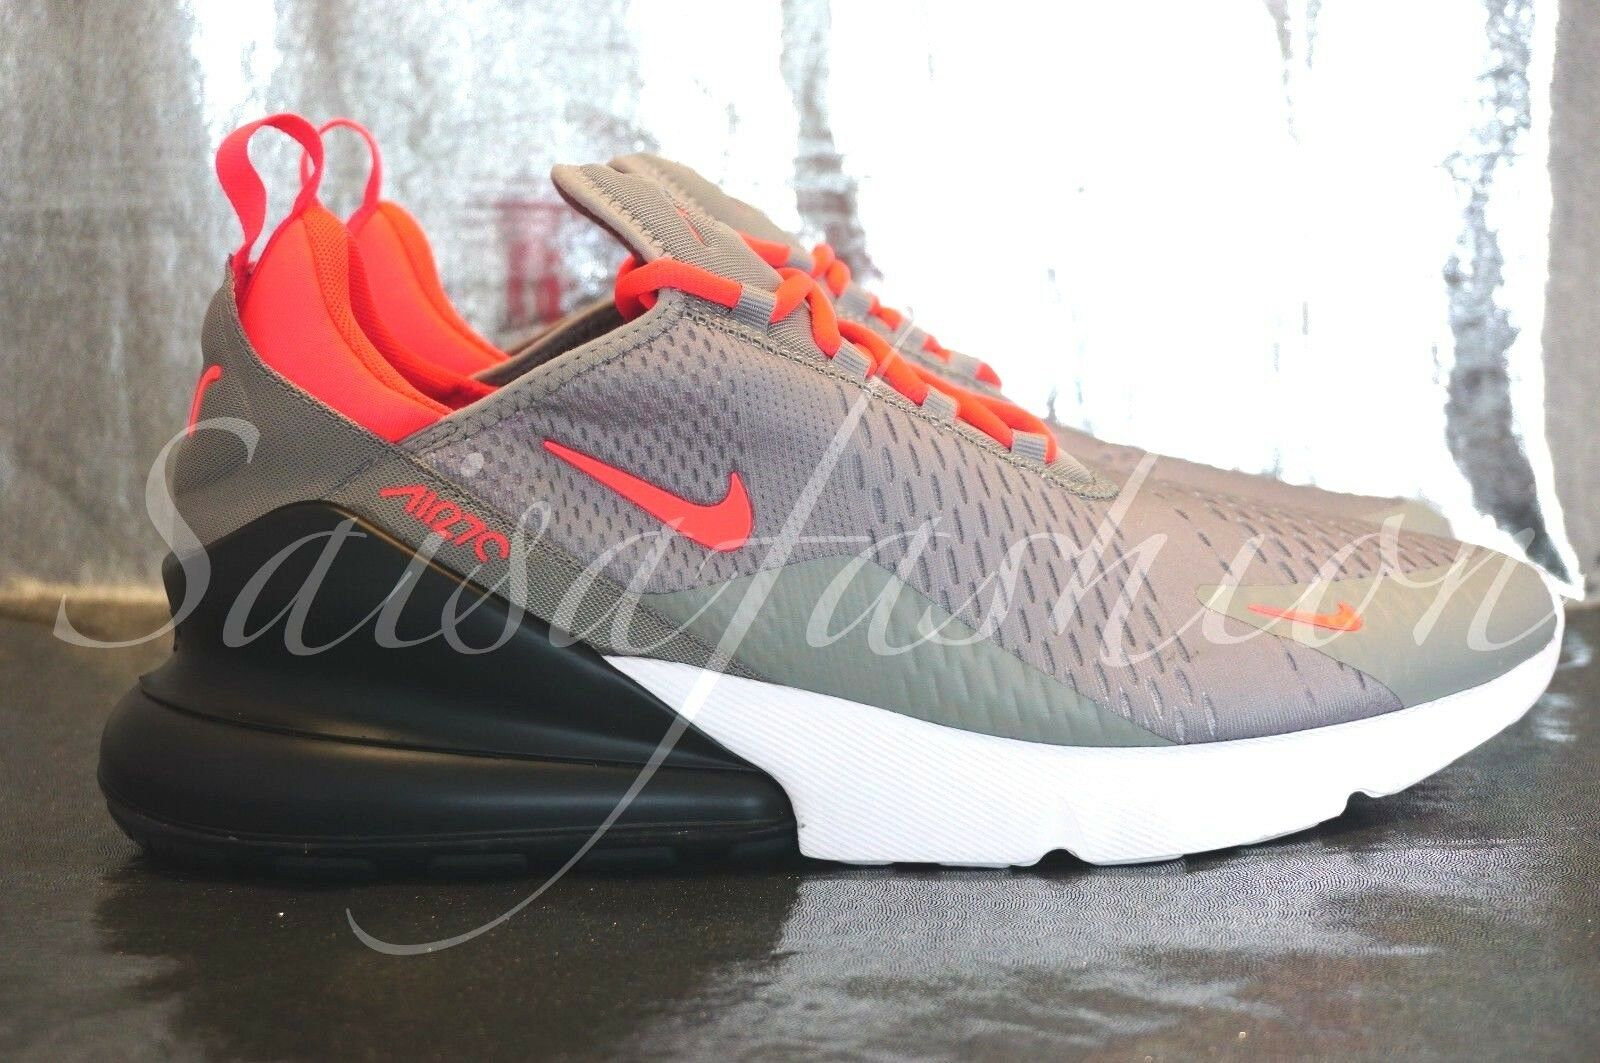 cd412f19a68529 Nike Air Max 270 ID Air Max Day 3 26 Grey Bq0742-997 Men Sz 13 for ...